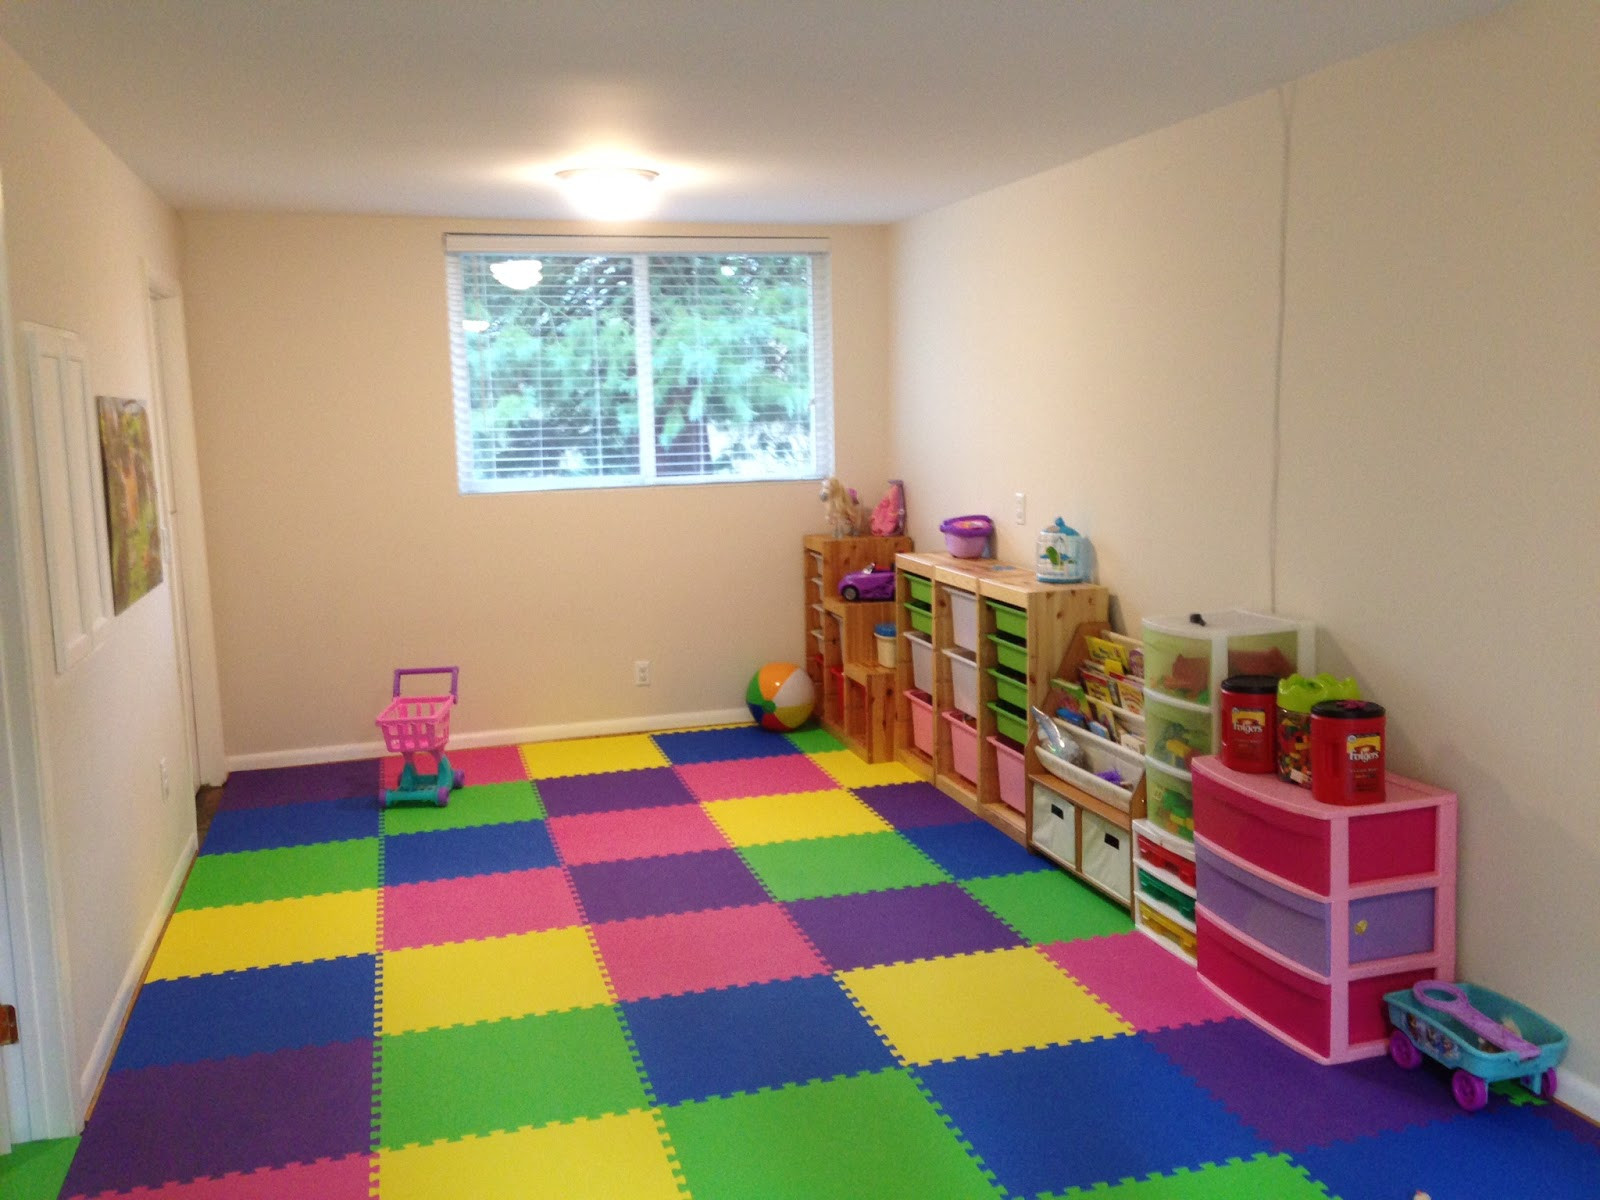 Carpet Tiles For Kids Room  Greatmats Specialty Flooring Mats and Tiles Creating a